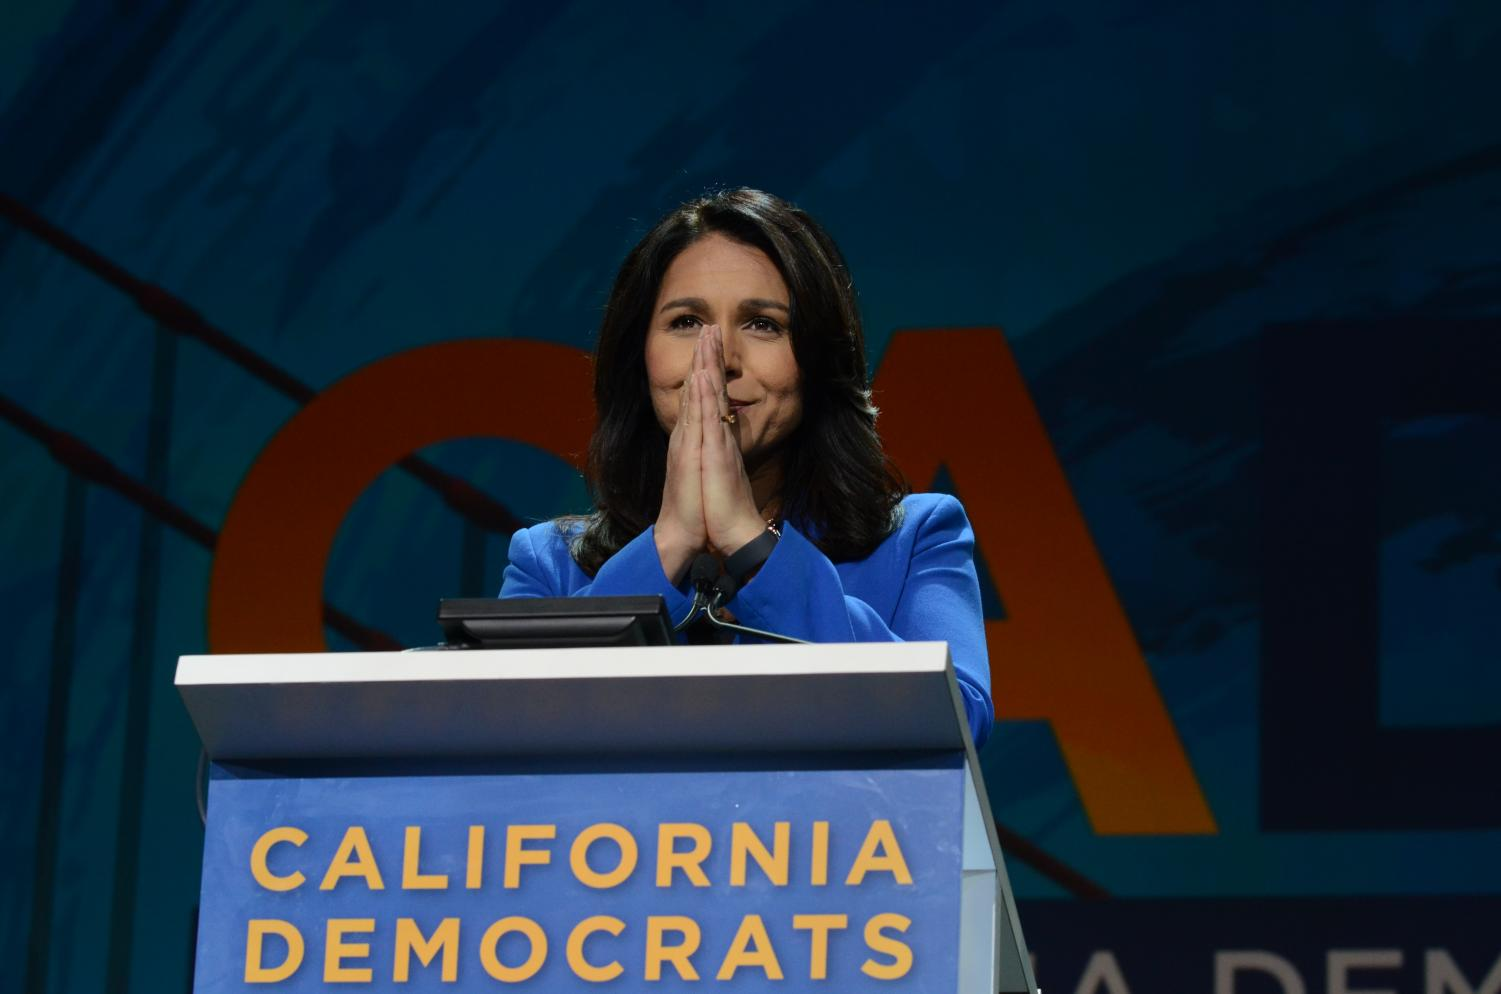 Tulsi+Gabbard%2C+U.S.+Representative+for+Hawaii%2C+addresses+her+goals+of+protecting+the+environment+and+ending+the+nuclear+arms+race.+She+hopes+to+%E2%80%9Cusher+in+a+green+century%E2%80%9D+and+%E2%80%9Clead+with+aloha+respect%2C+care+and+love+regardless+of+gender+or+sexual+orientation.%E2%80%9D